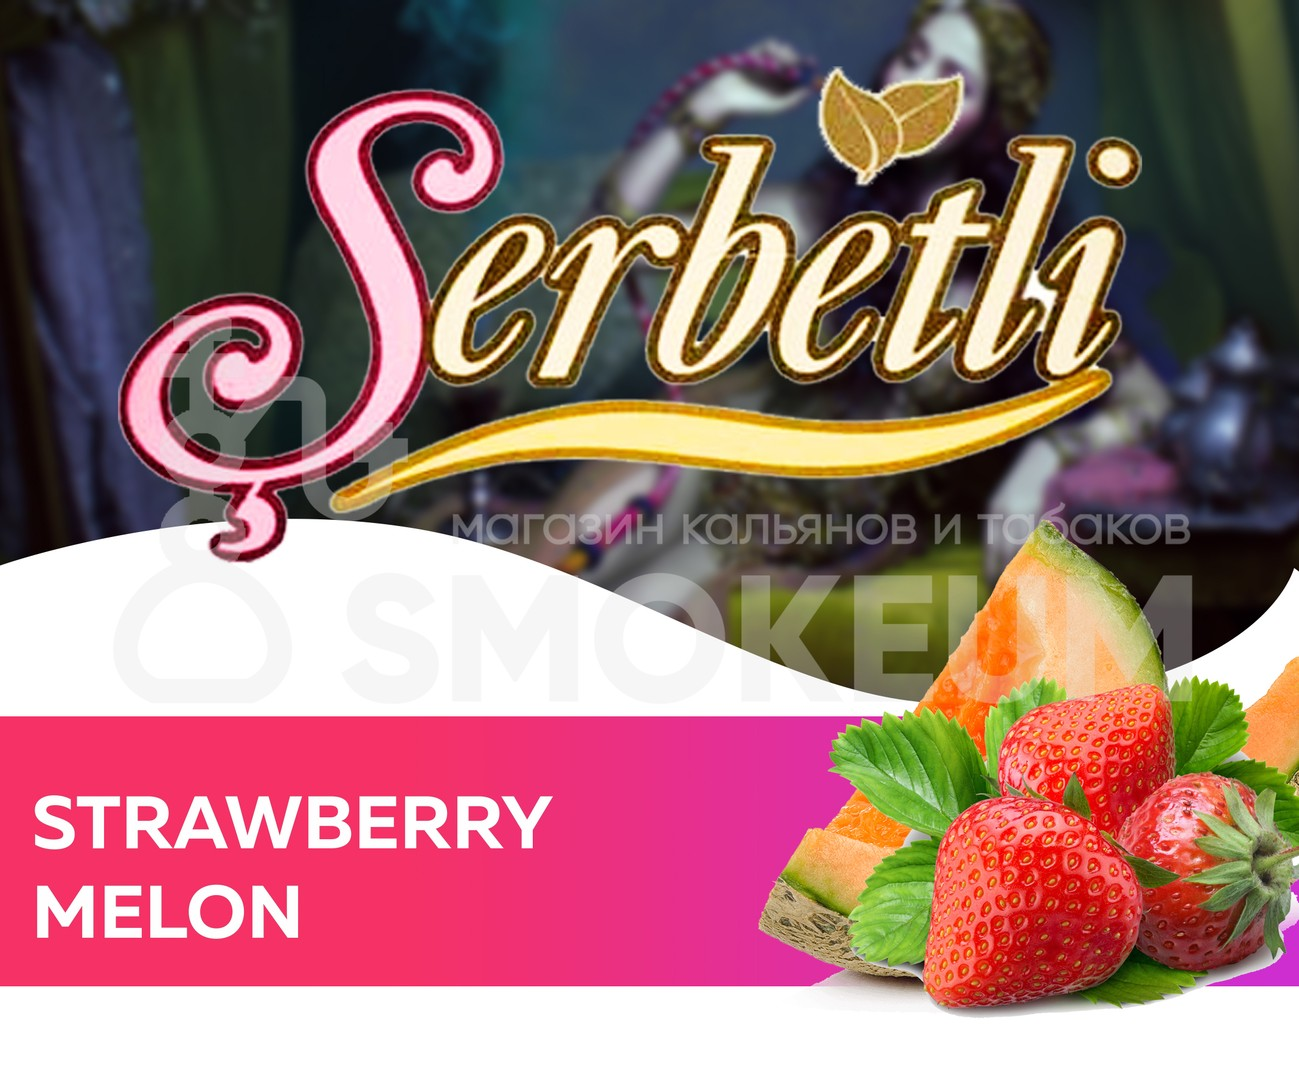 Табак Serbetli - Strawberry Melon (Клубника и Дыня) 50 гр